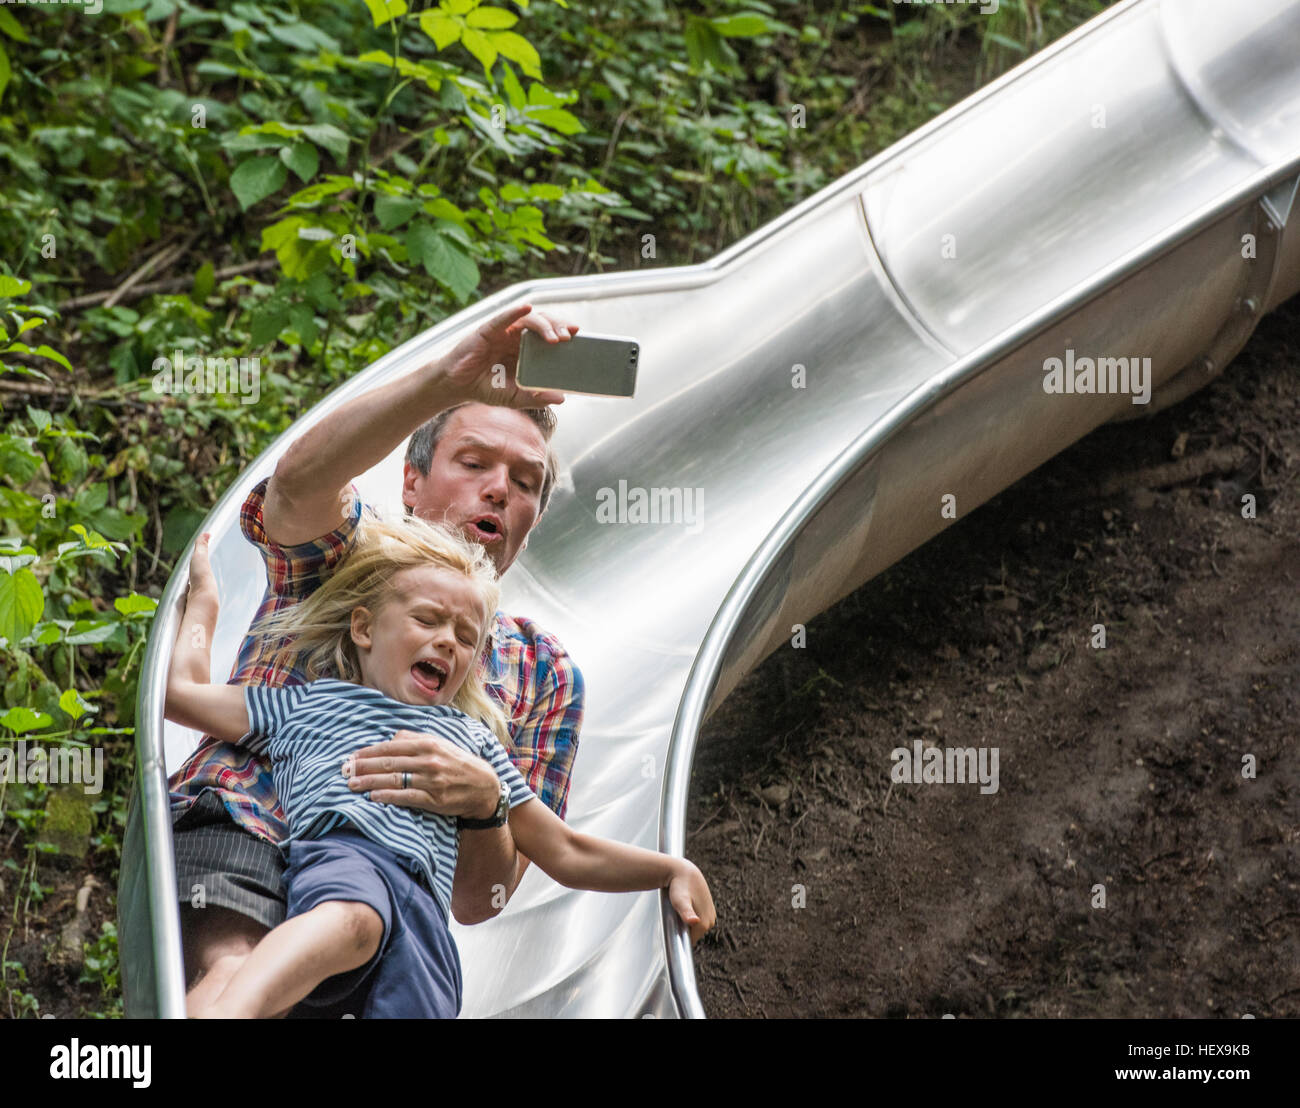 Father and son sliding down slide holding smartphone - Stock Image